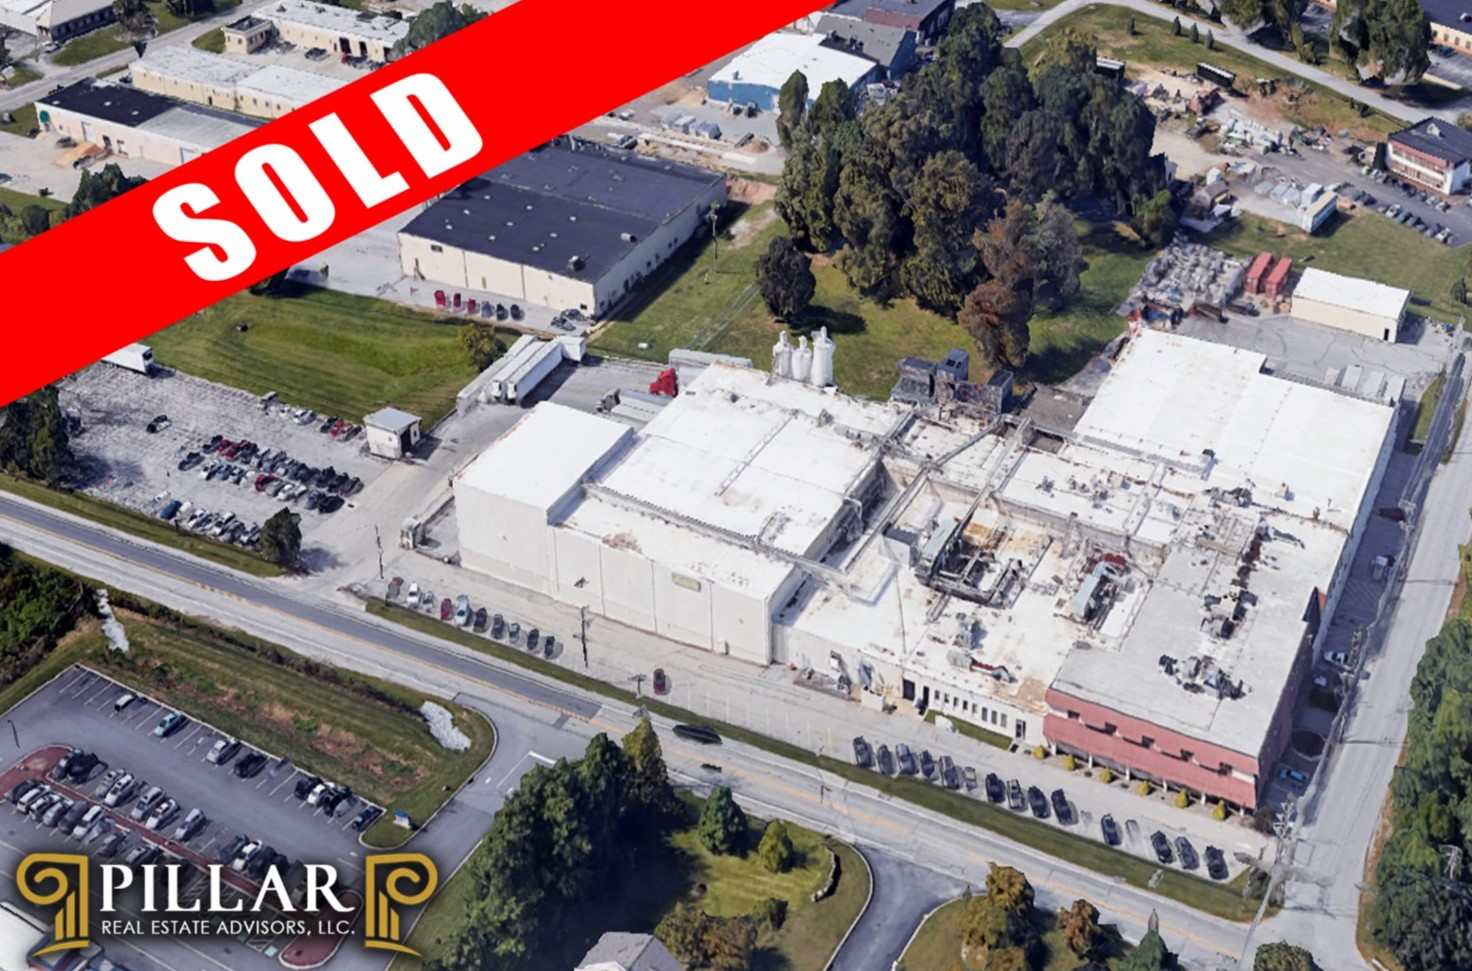 Pillar Real Estate Advisors Brokers Sale of Industrial Warehouse, Cold-Storage Facility in West Chester